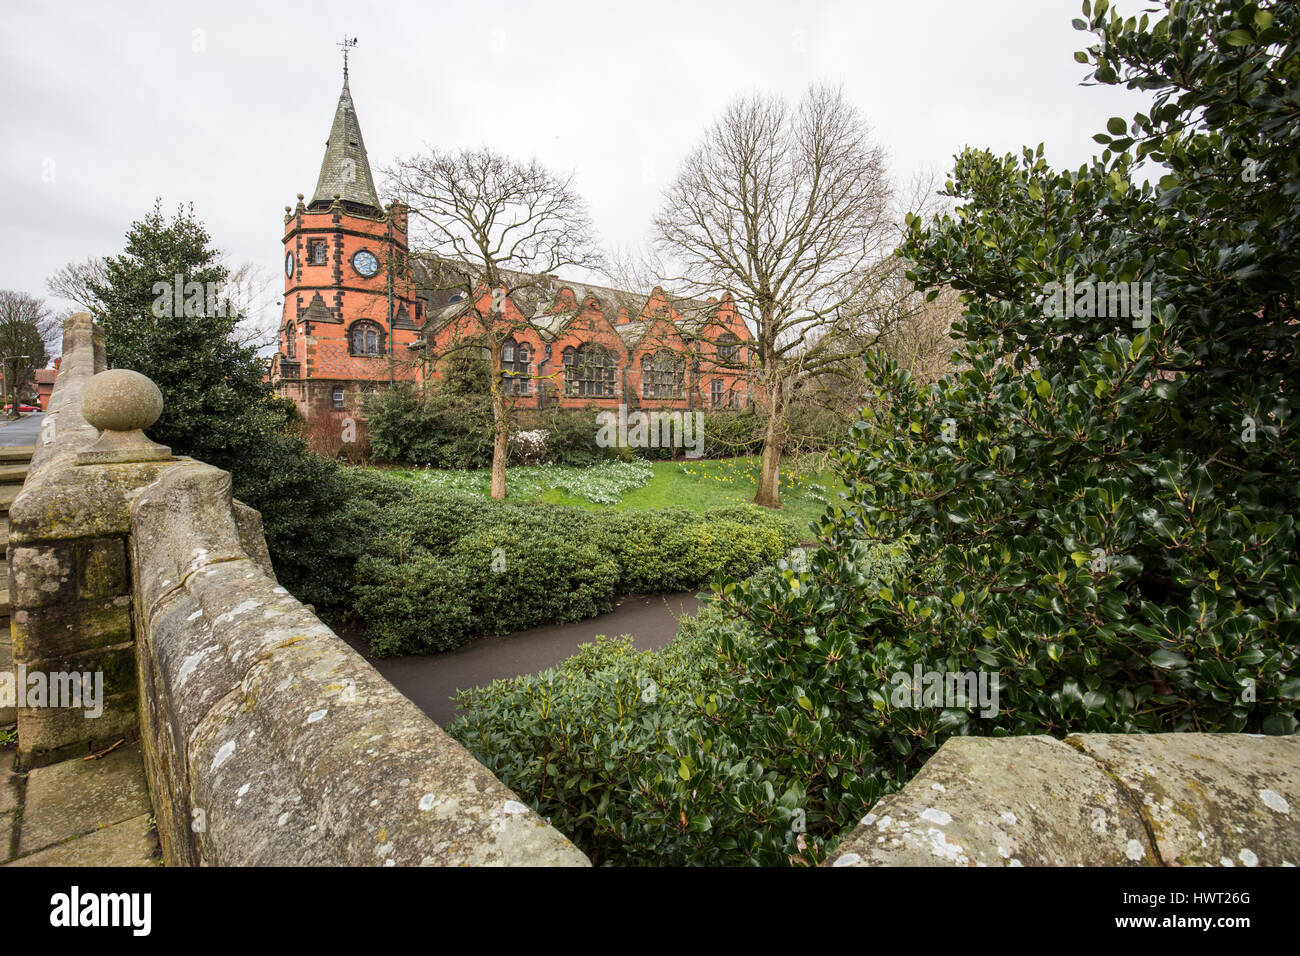 Port Sunlight - a model village and suburb in the Metropolitan Borough of Wirral, Merseyside. Lyceum building - Stock Image